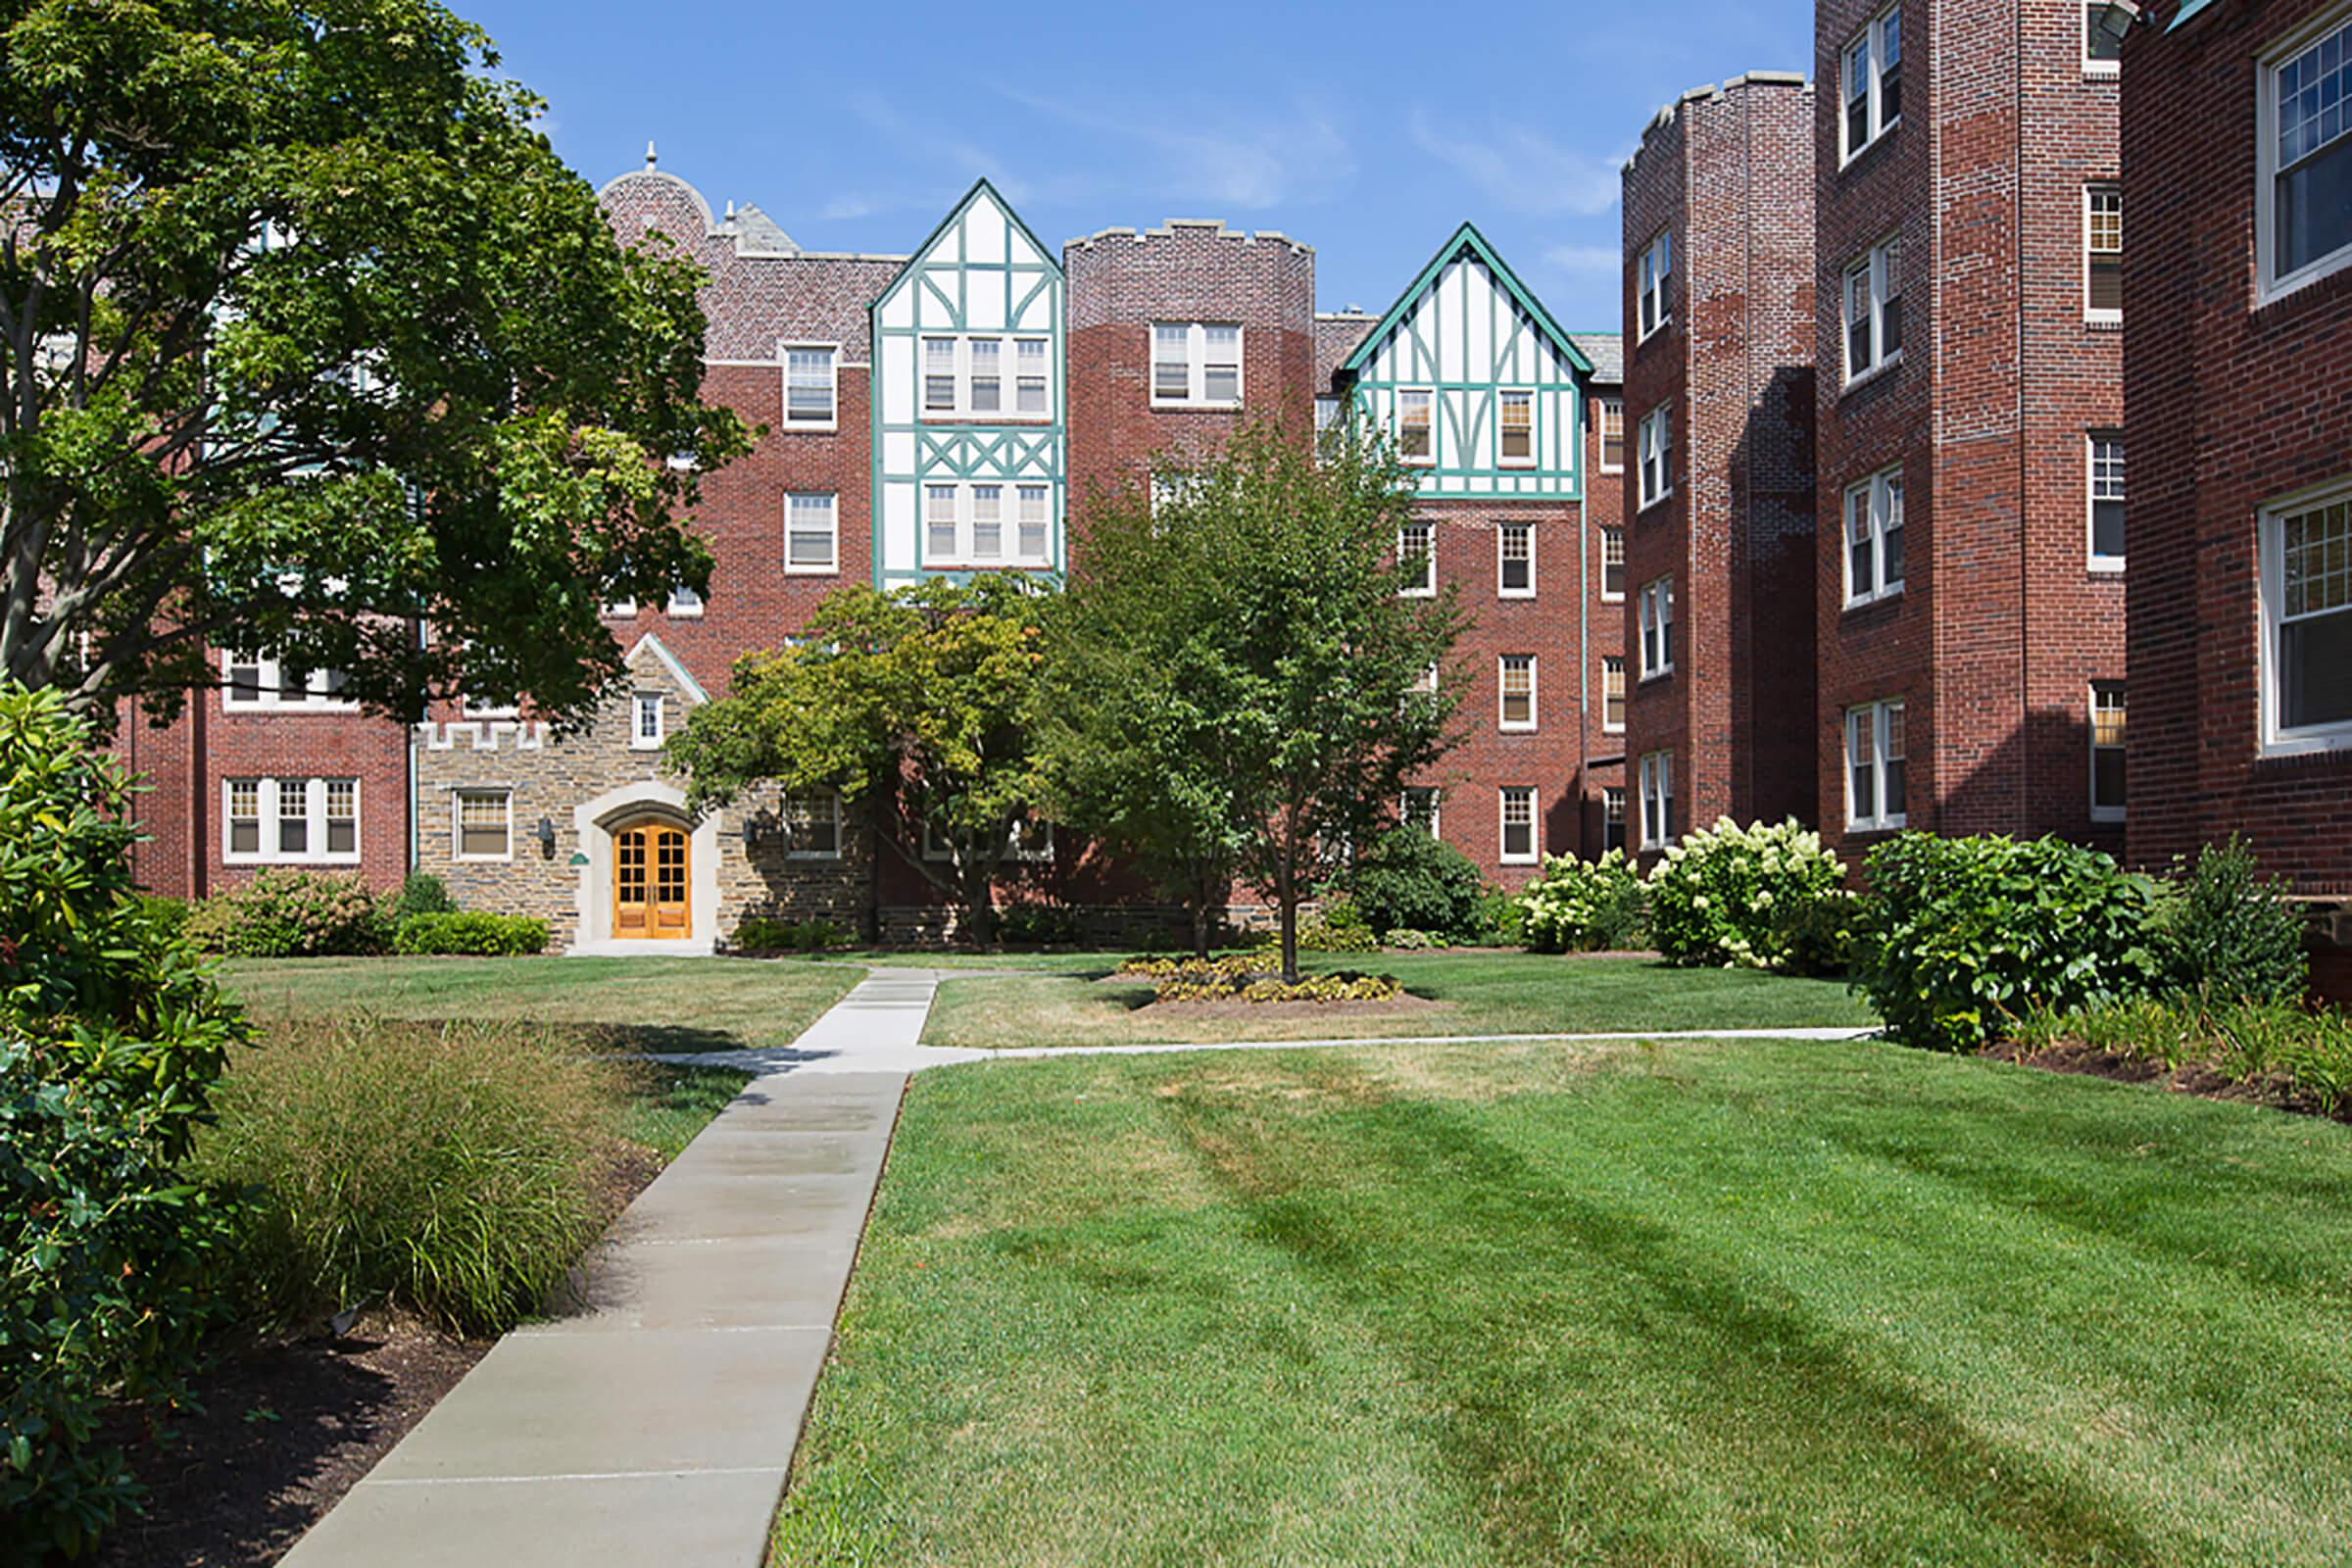 a path with grass in front of a brick building